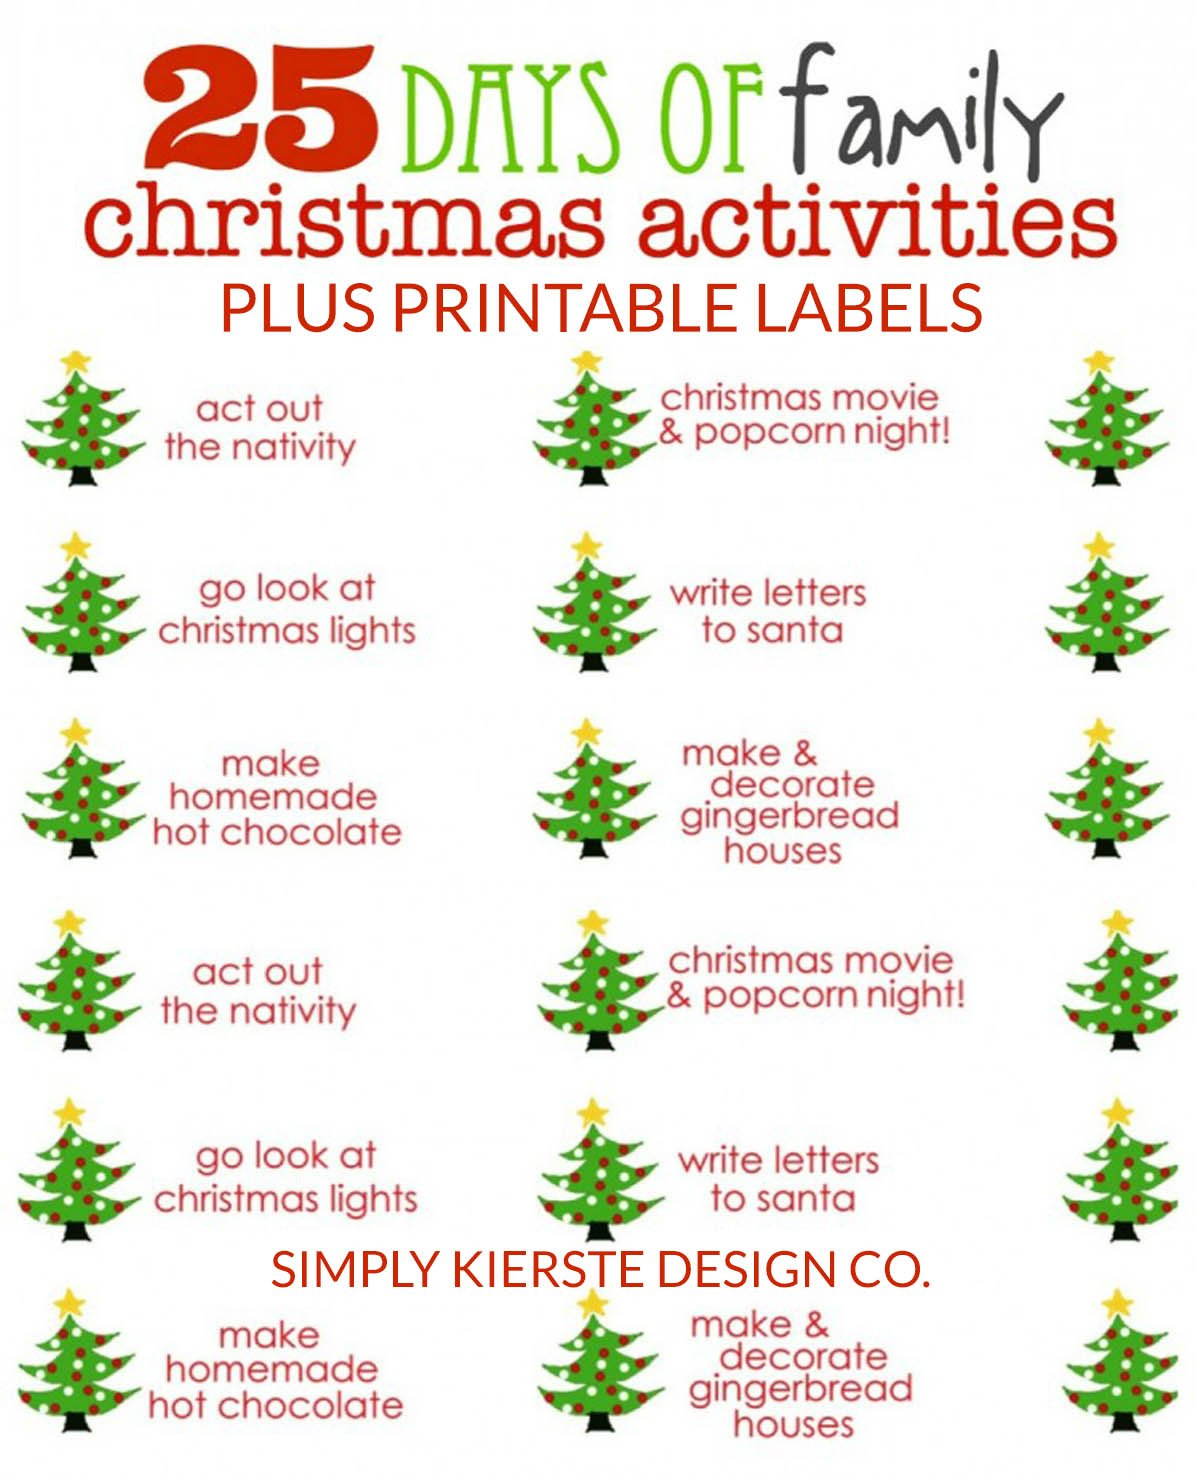 25 days of family christmas activities free printable labels simplykierstecom christmastraditionsforfamiilies - How Many Days Of Christmas